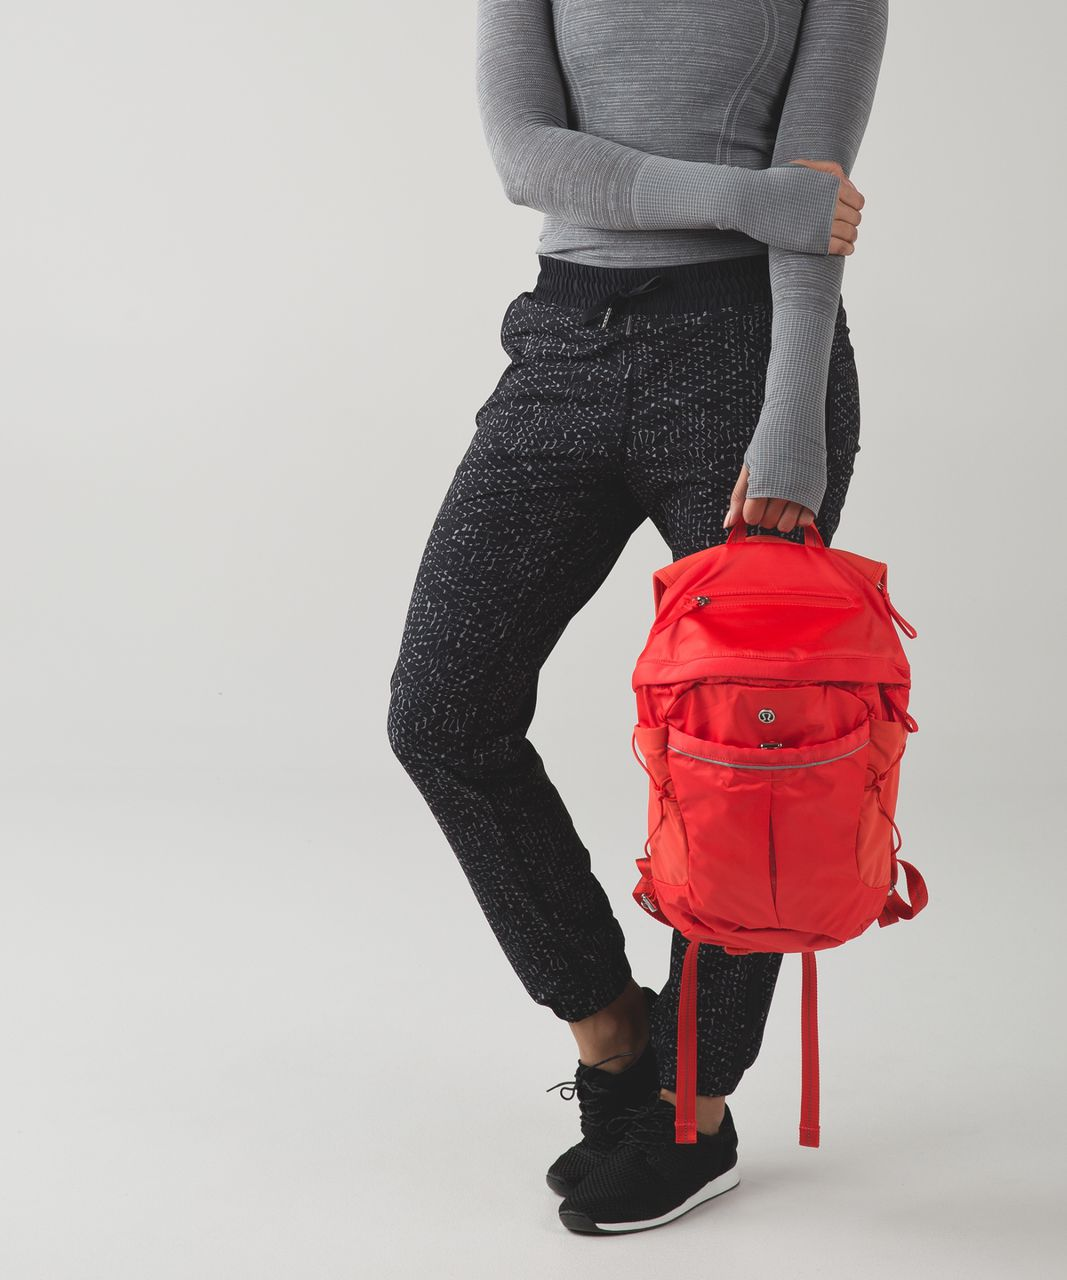 Lululemon Run All Day Backpack - Alarming